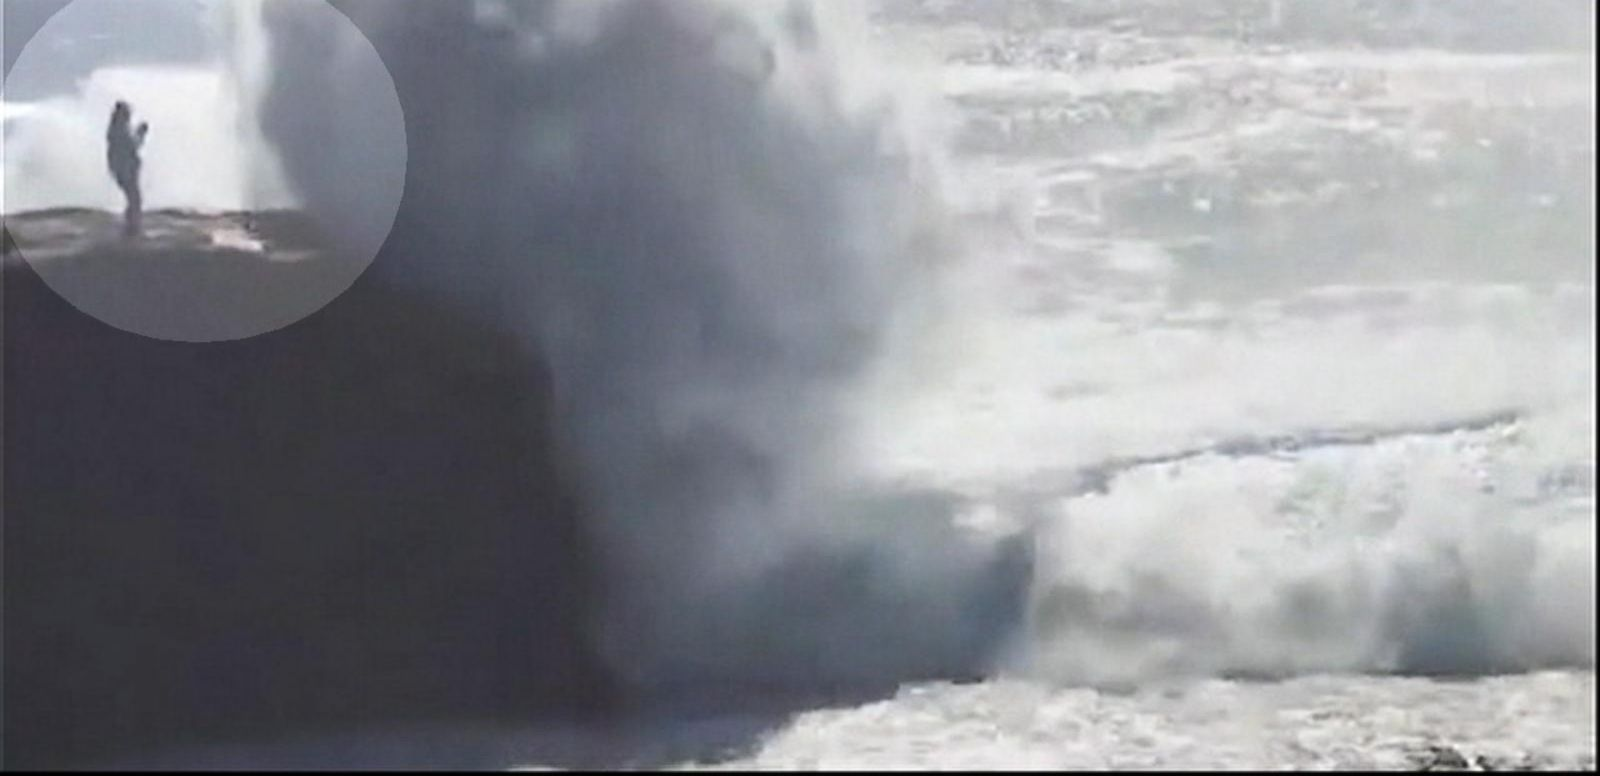 VIDEO: Woman Visiting Ireland Swept Away by Massive Wave